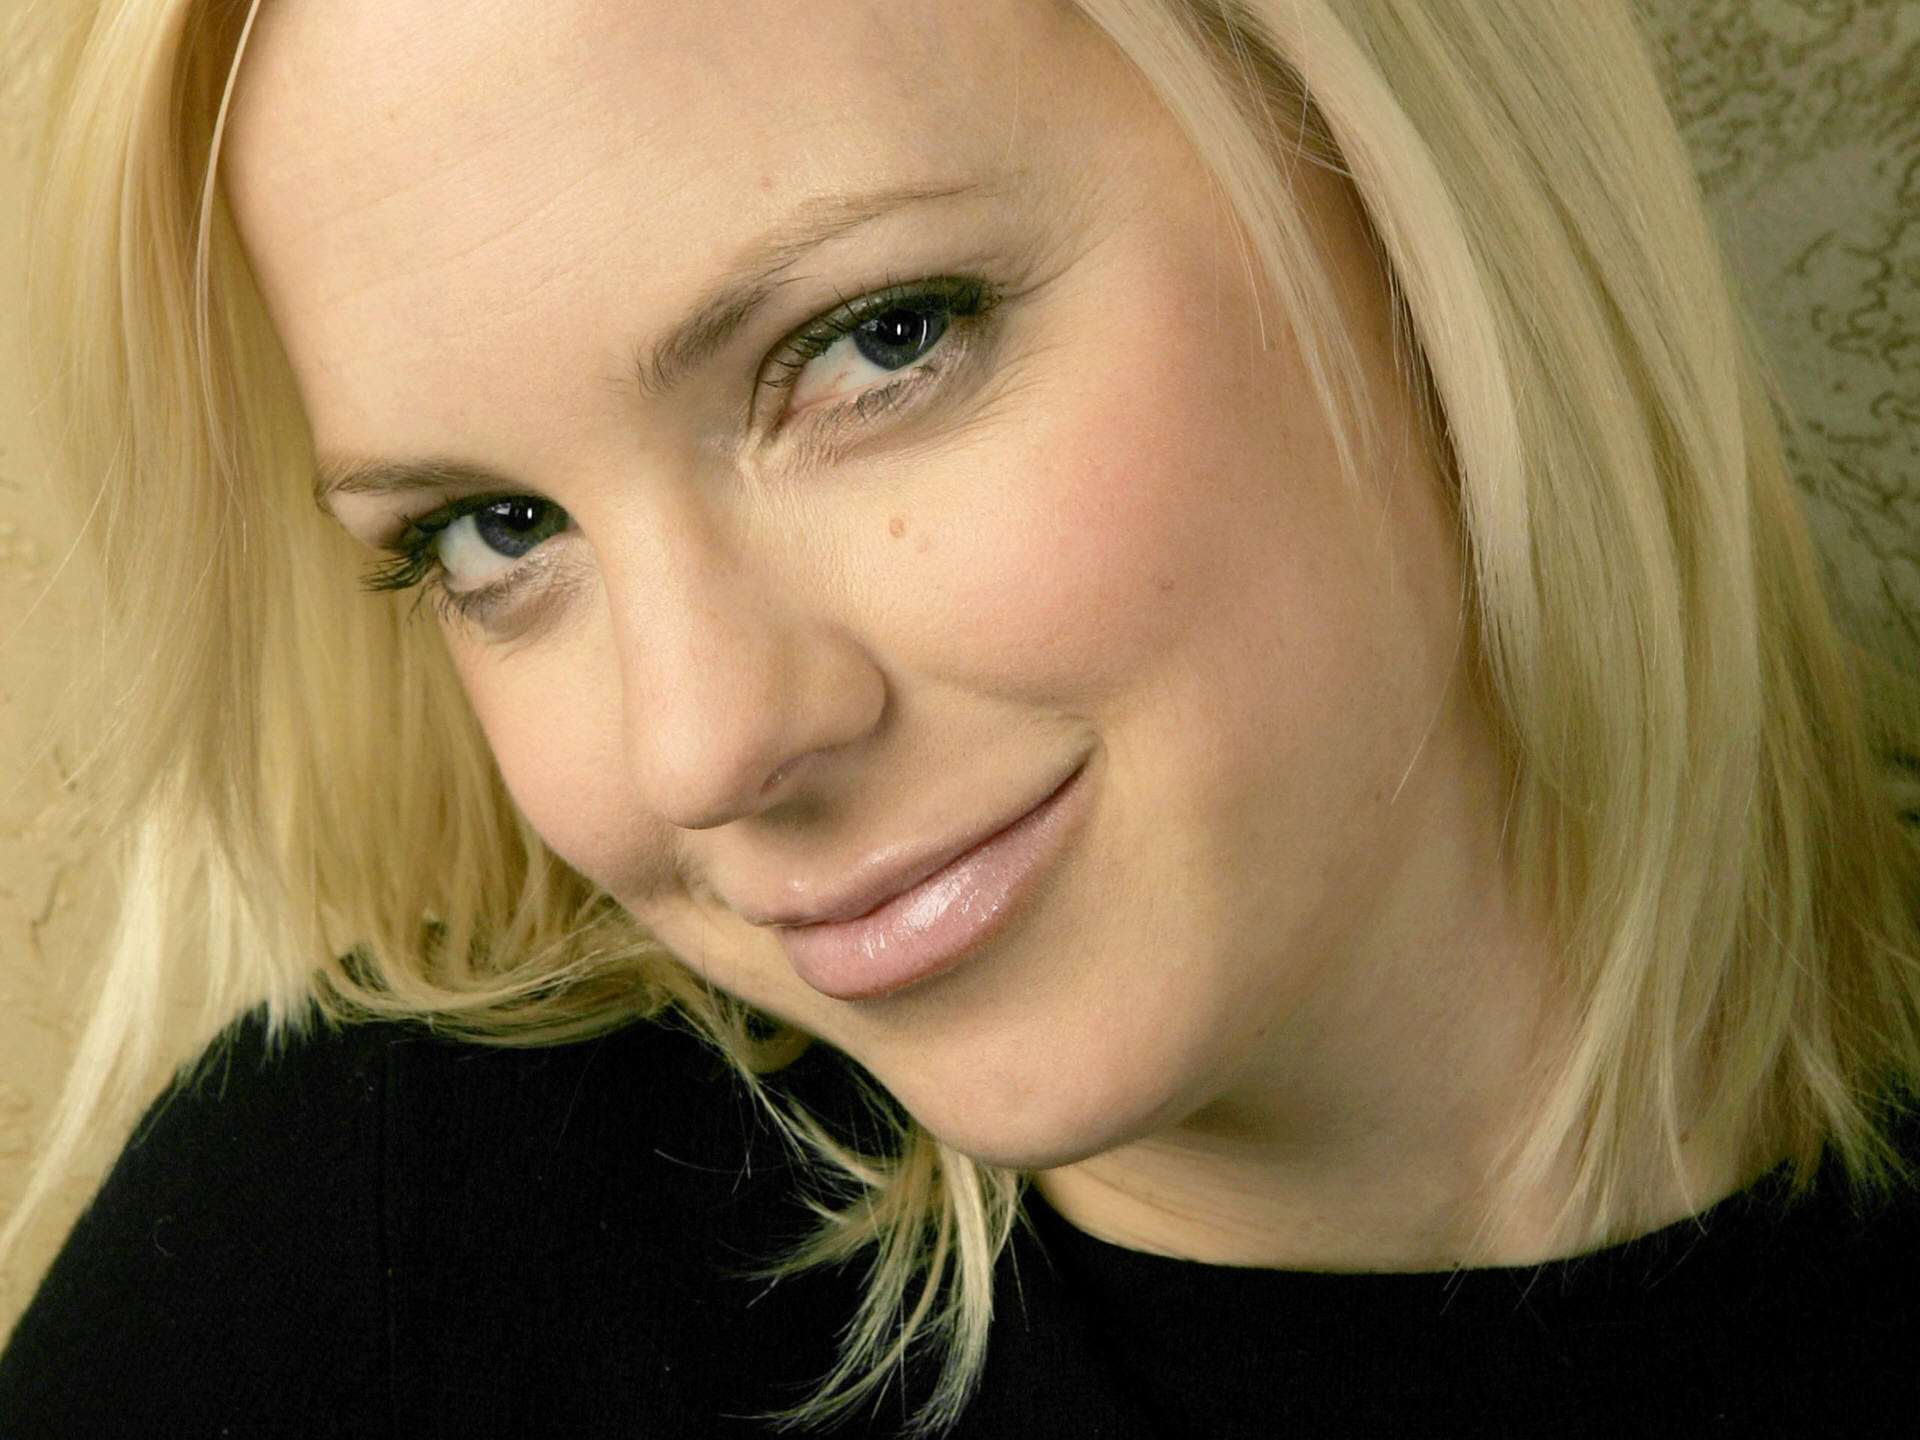 Anna Faris Widescreen for desktop